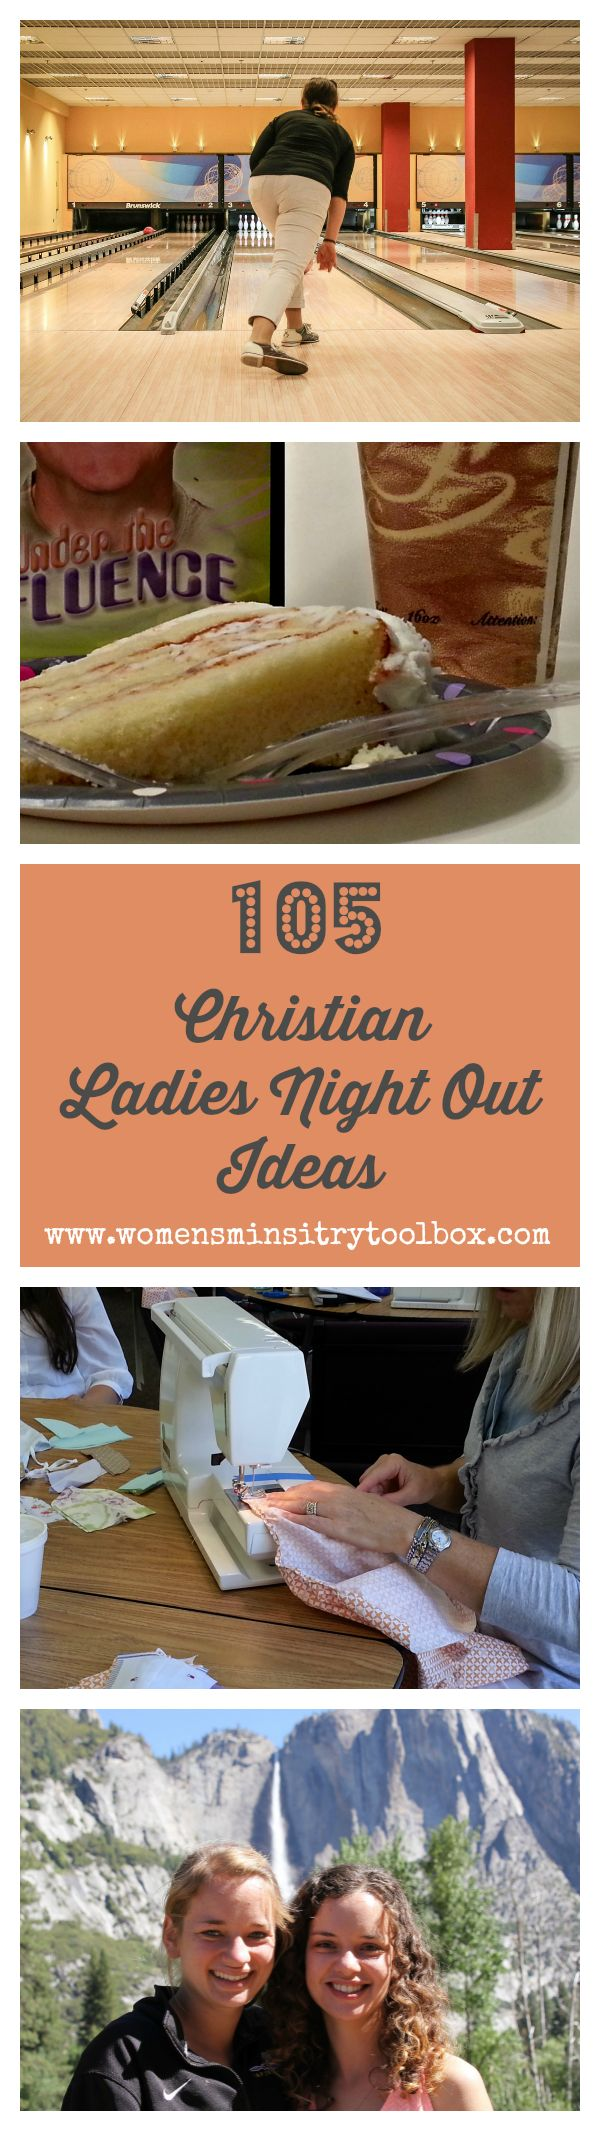 105 Christian Ladies Night Out Ideas - Need fresh fellowship ideas? Check these out!